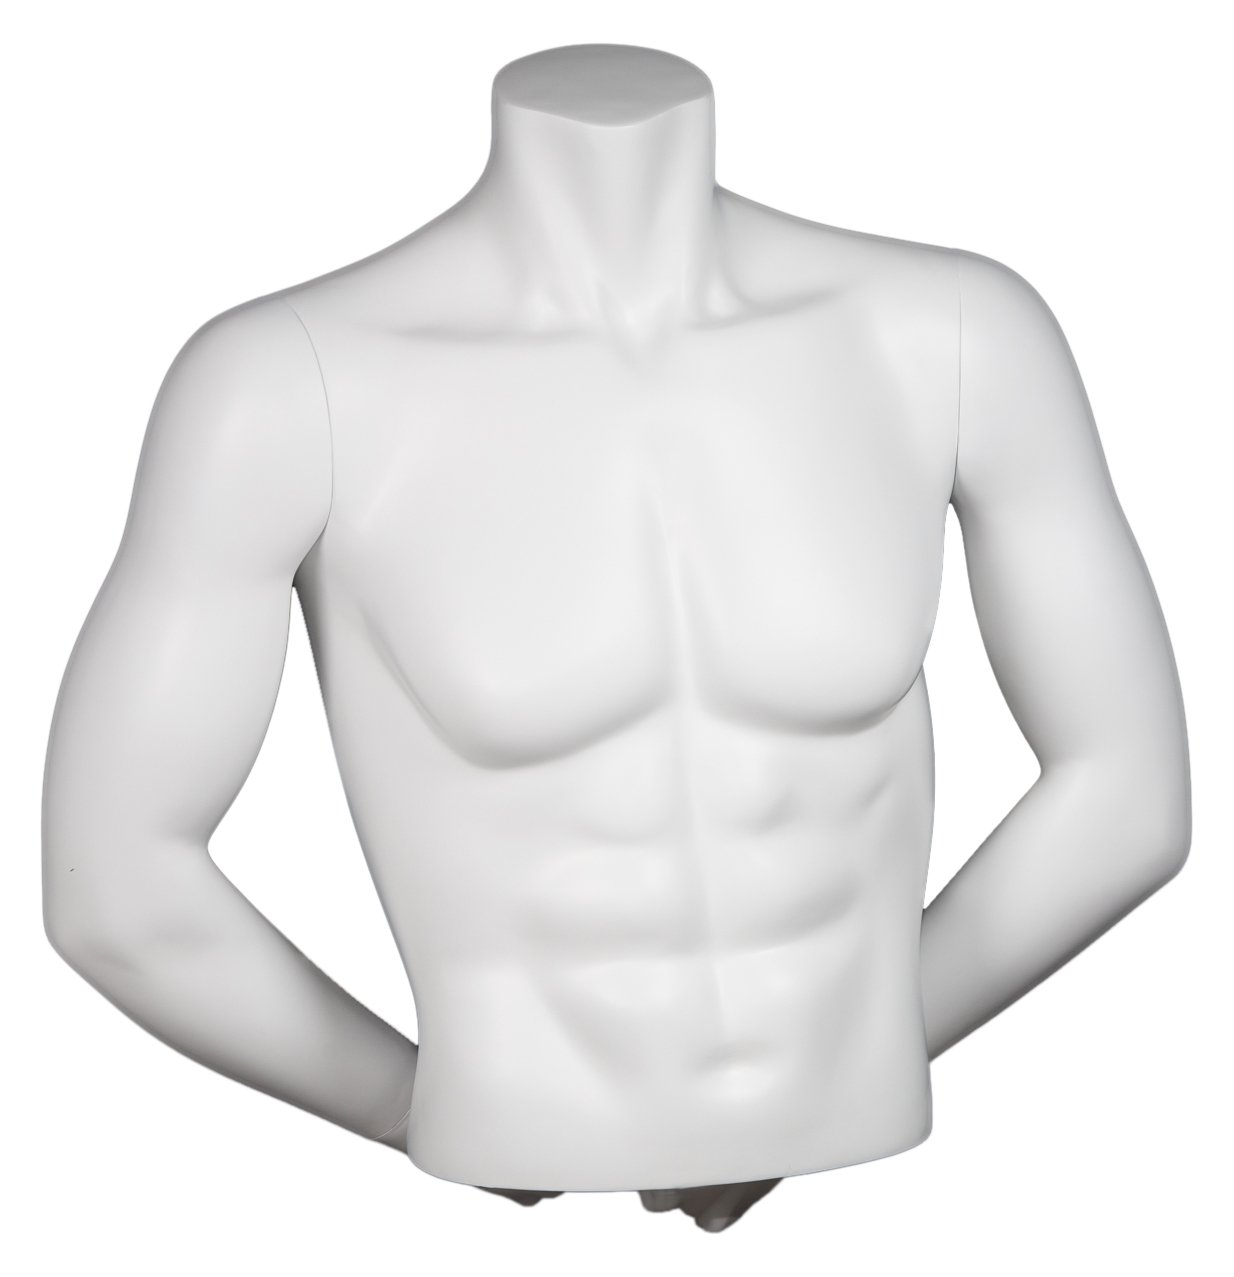 Newtech Display MAM-A4-3505/WHT Male 1/2 Muscular Torso with Arms, Matte White